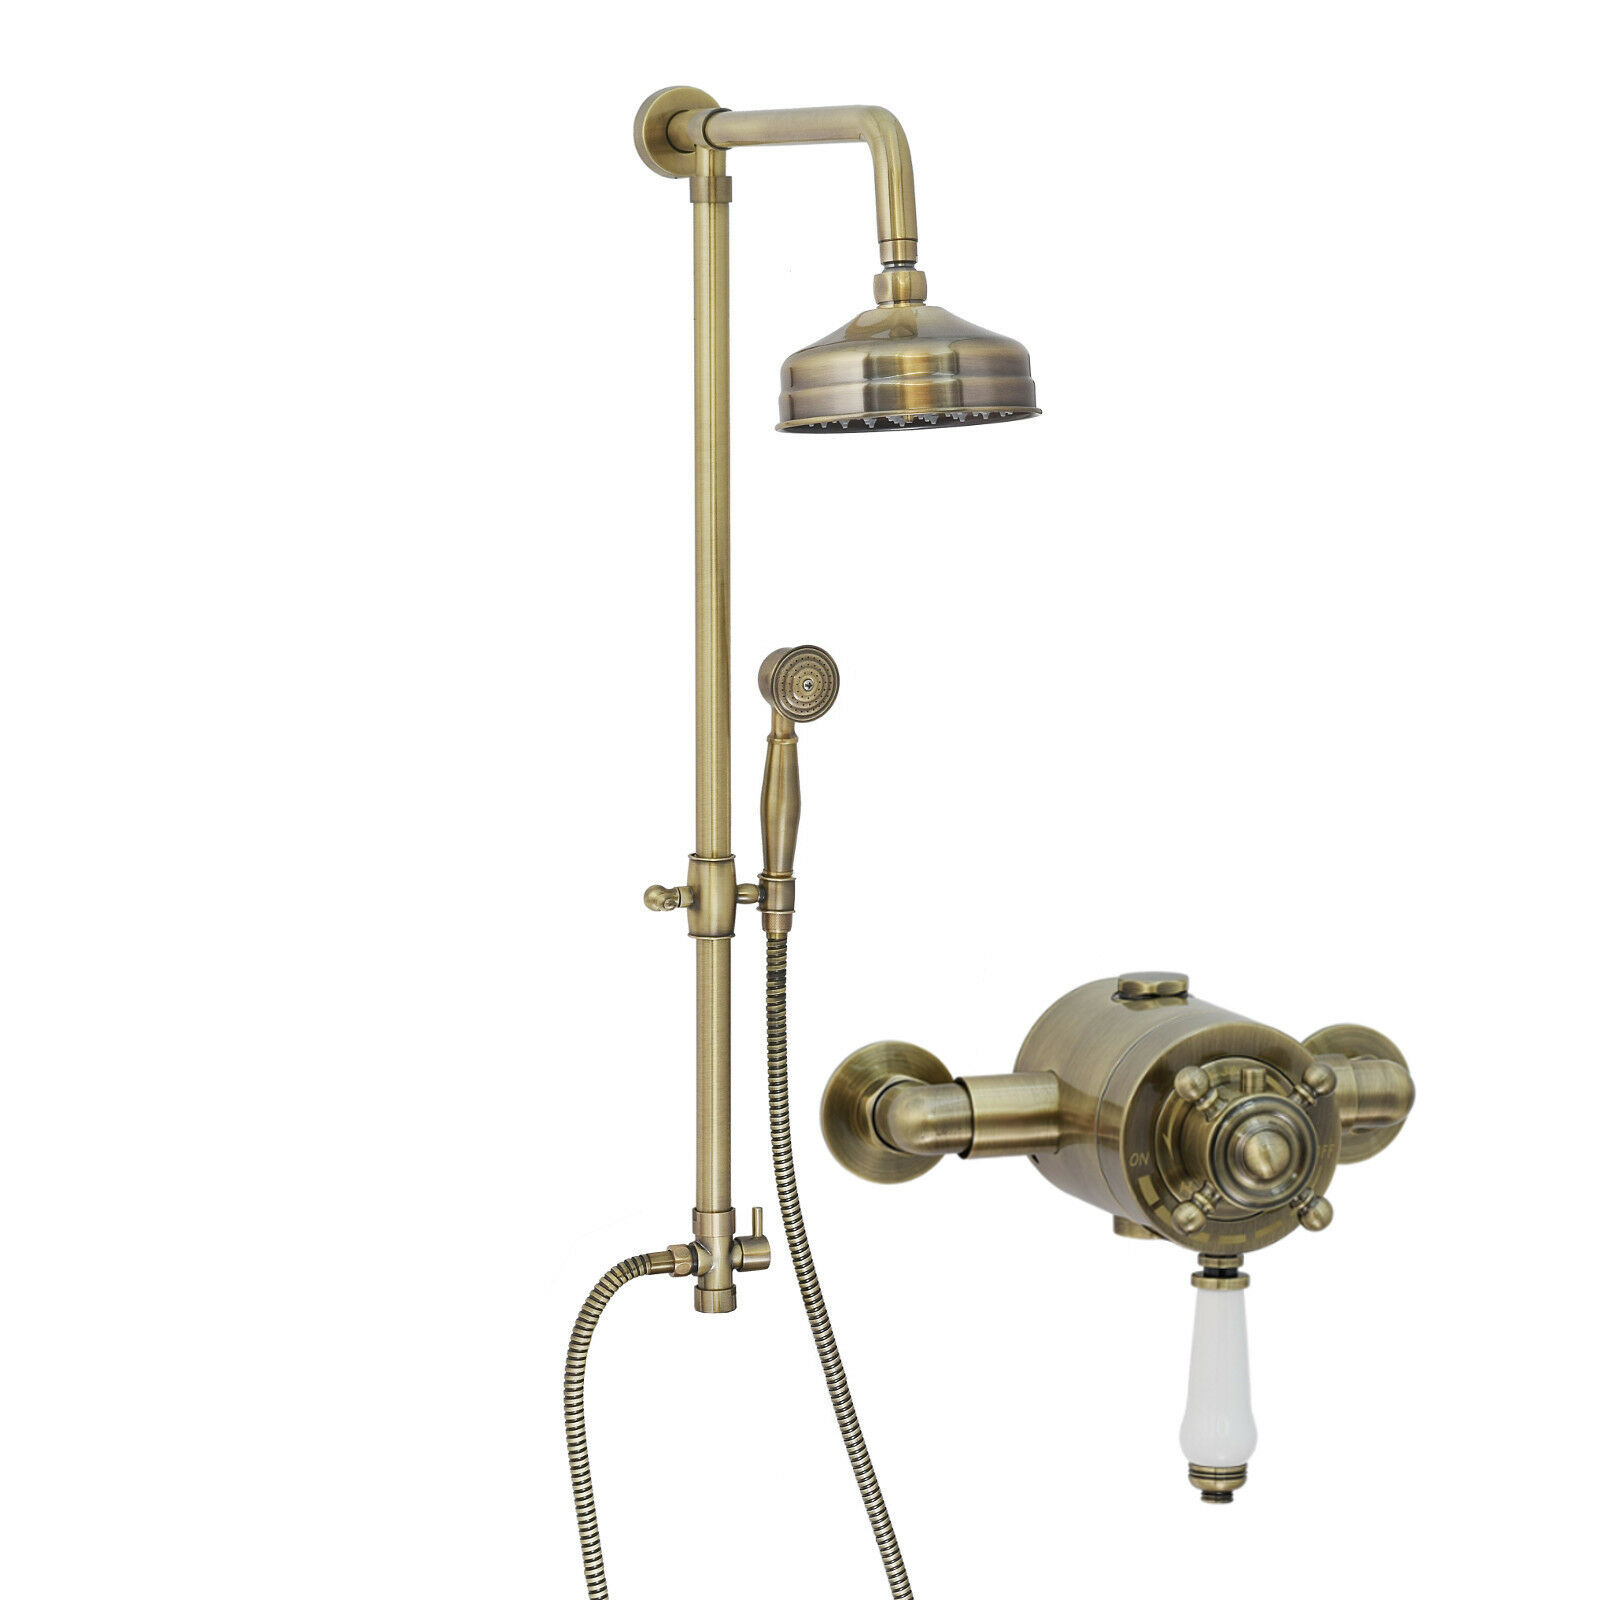 Enki concentriques douche thermostatique set Classic 15 Antique Bronze Main Claremont